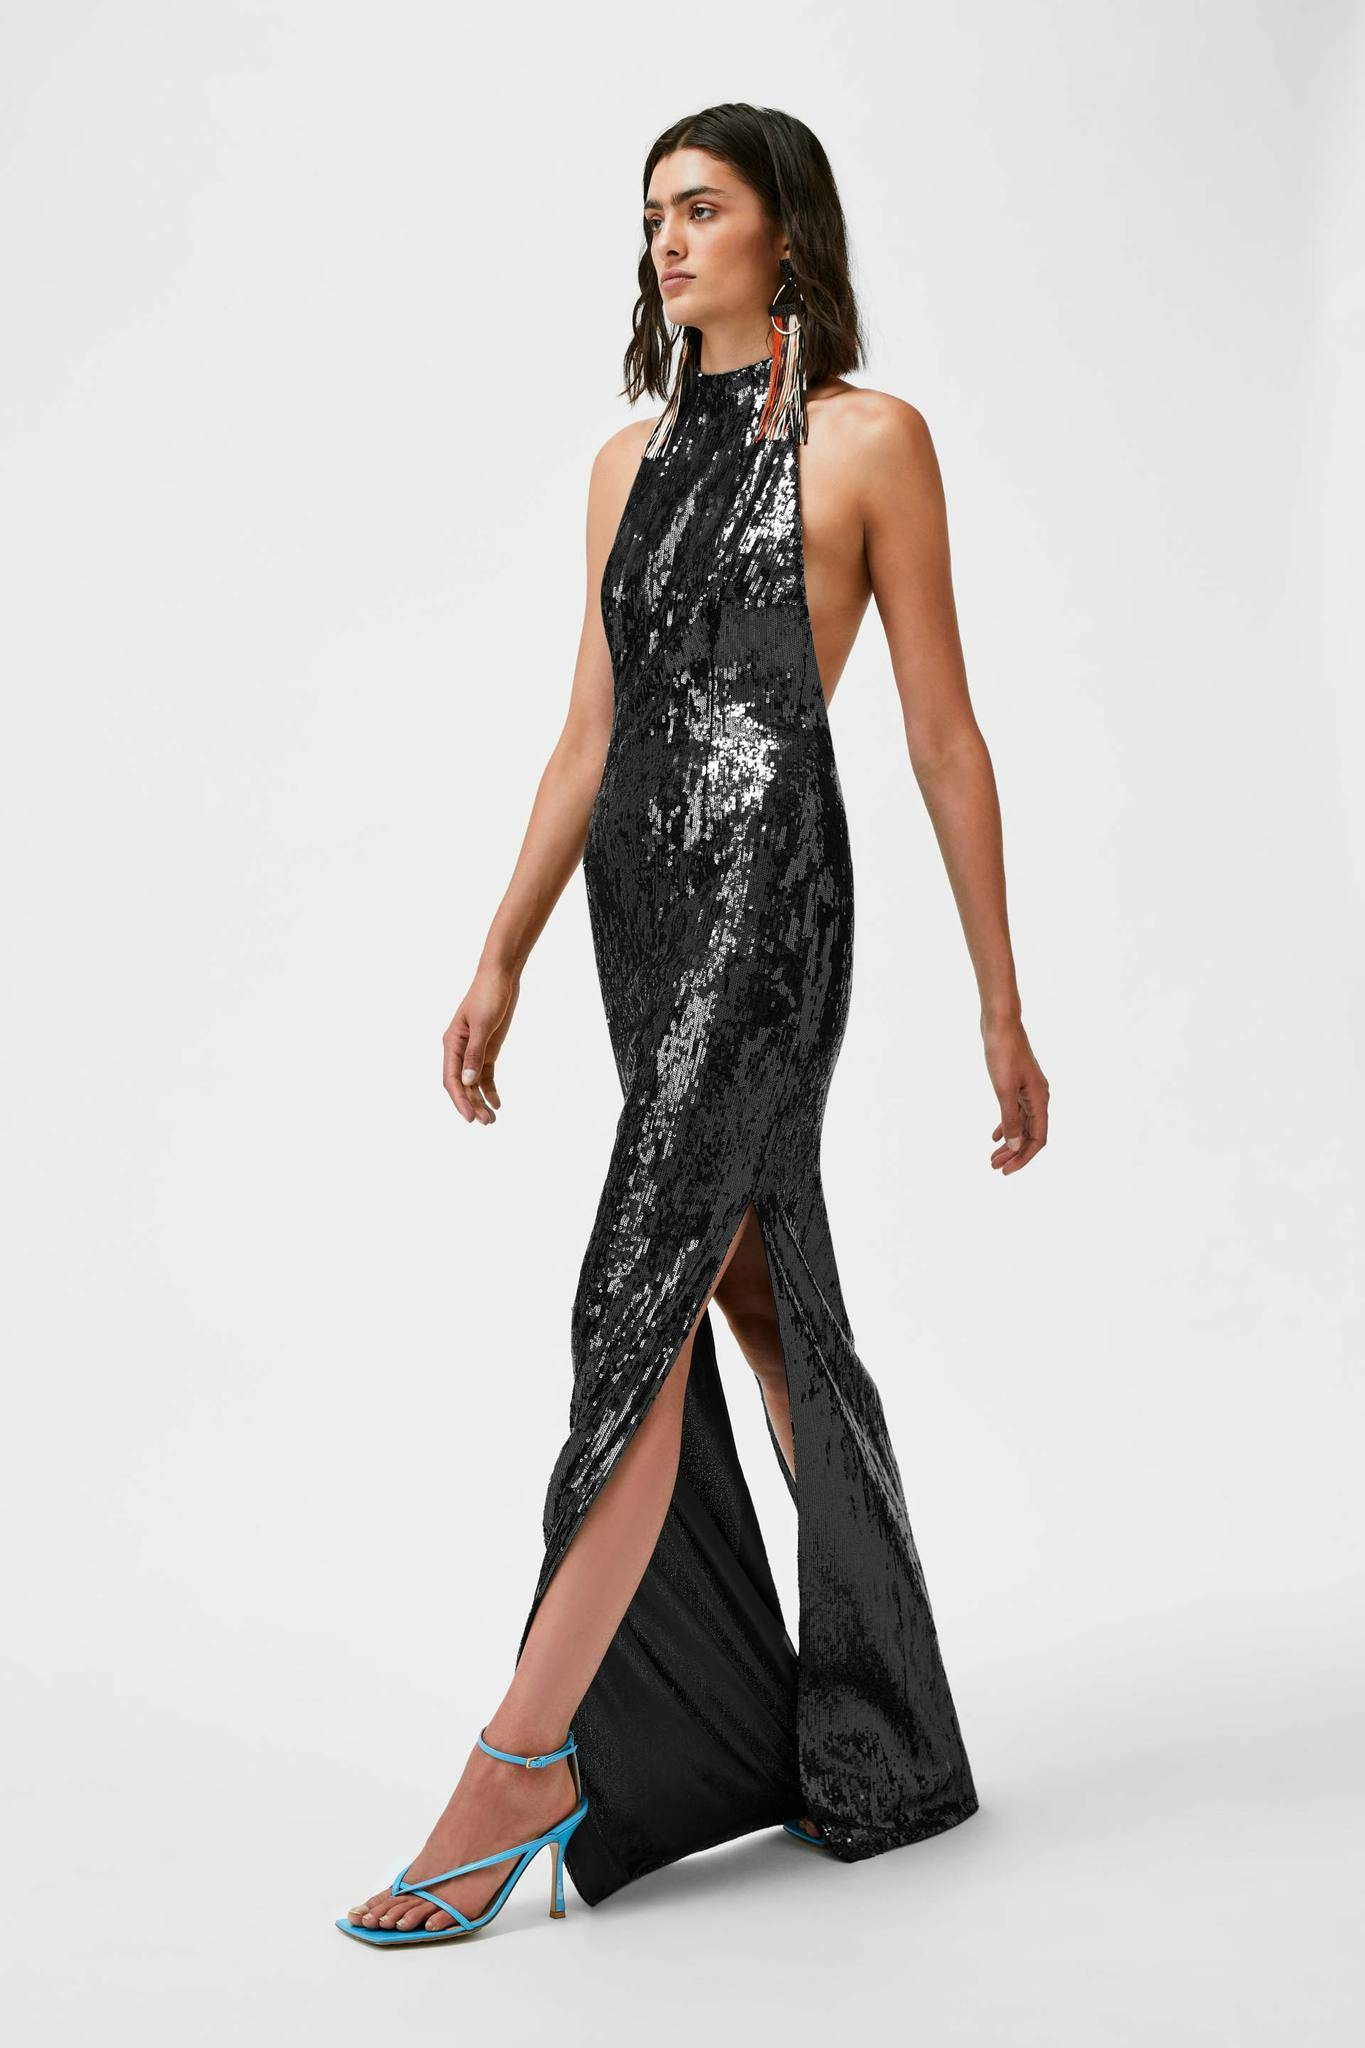 Galvan London High Neck Backless Sequin Black Dress